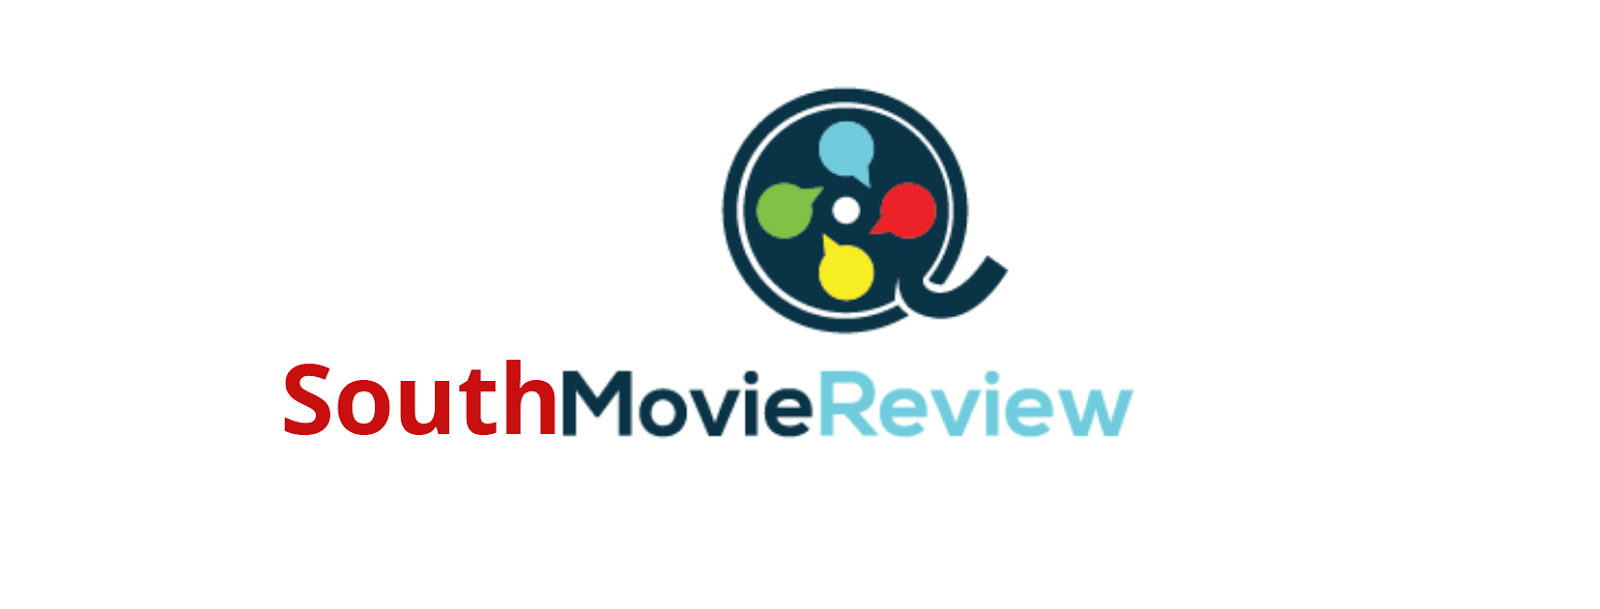 South movie review